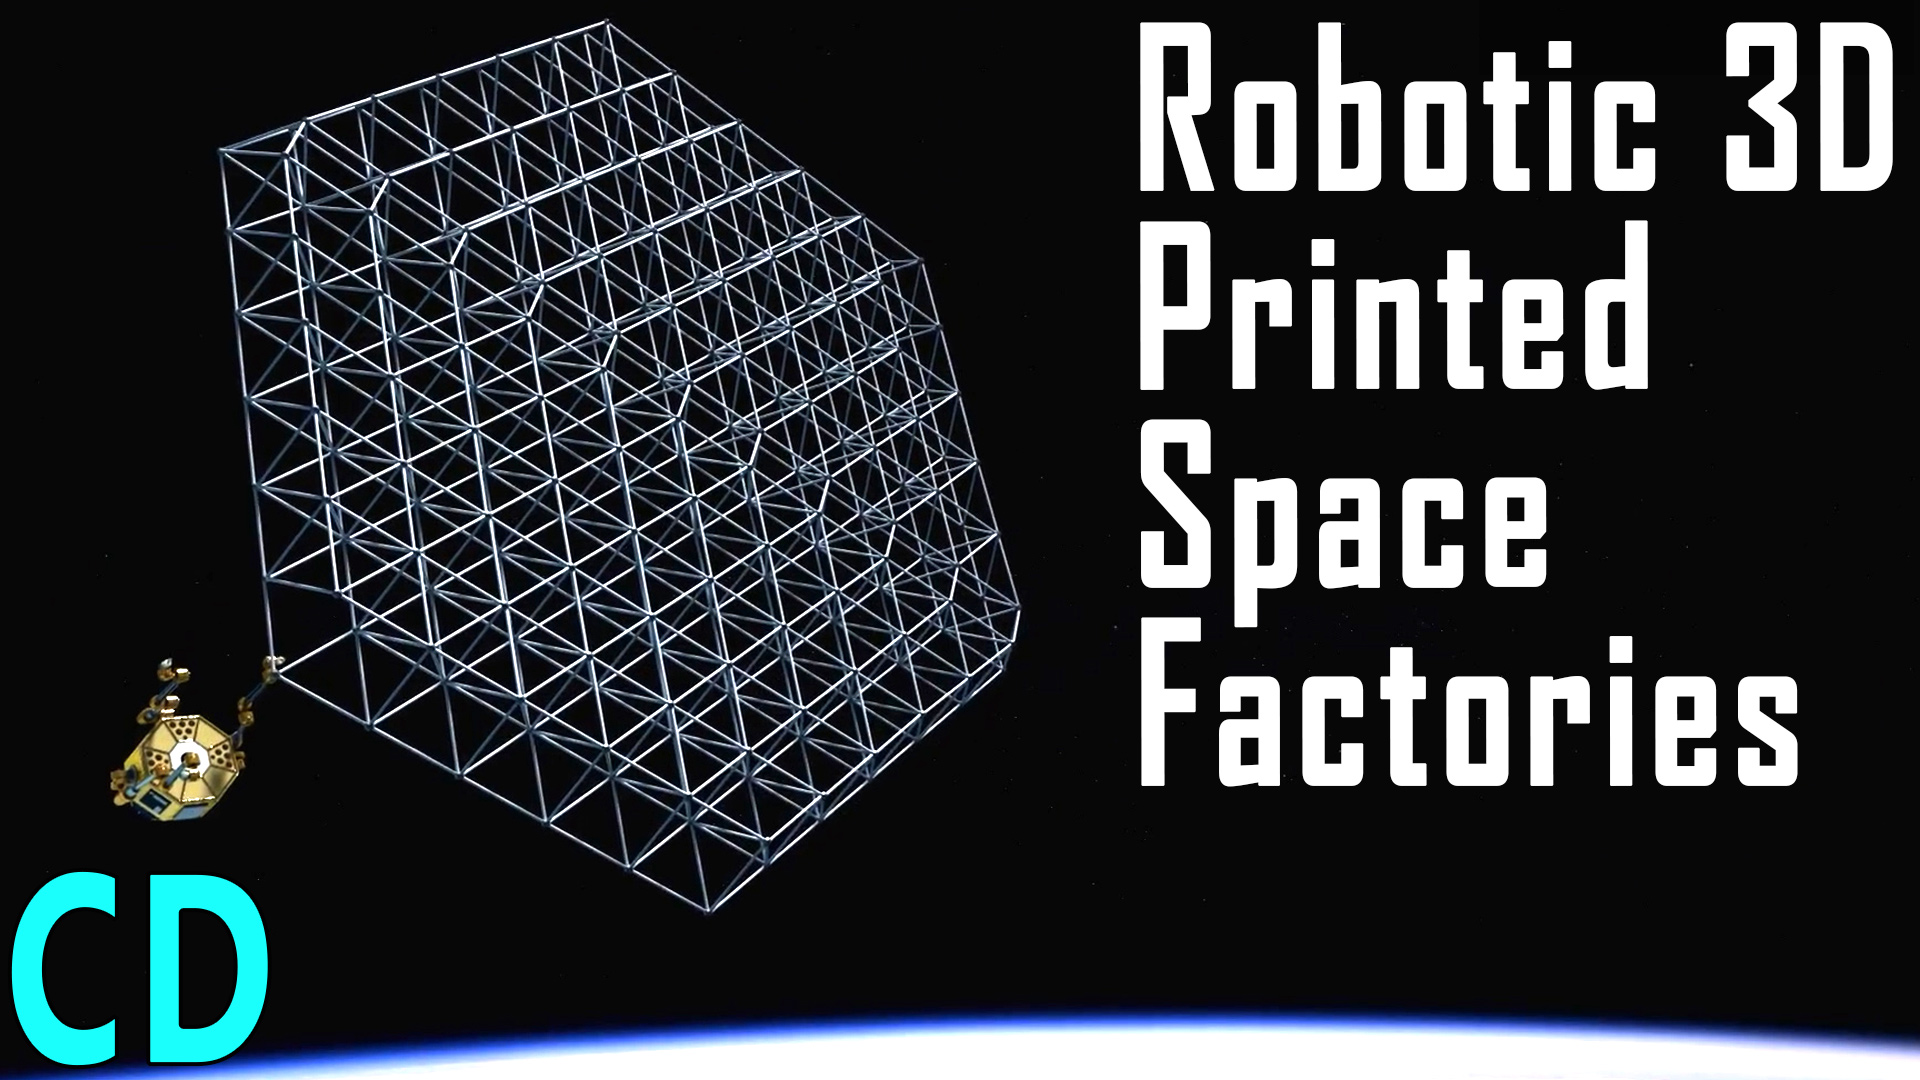 Space Factories - Building 3D Printed Future SpaceCraft in Space.